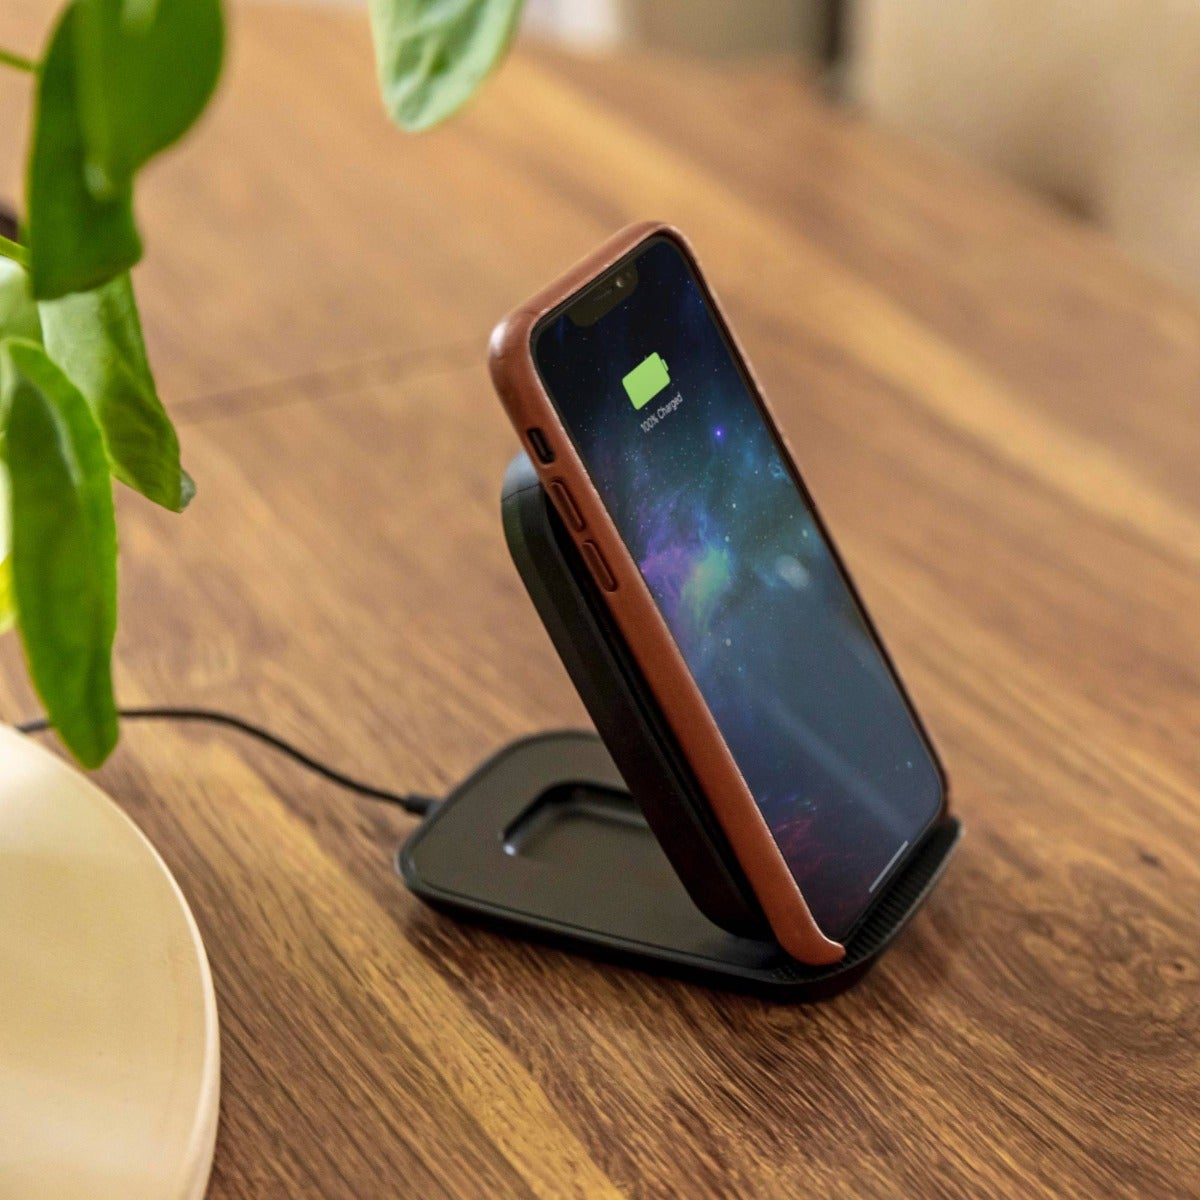 10w Wireless Charging Stand Fabric Mophie Storming Gravity Unveiled ahead of ces 2019, it doesn't look much different from other batteries in mophie's lineup. 10w wireless charging stand fabric mophie